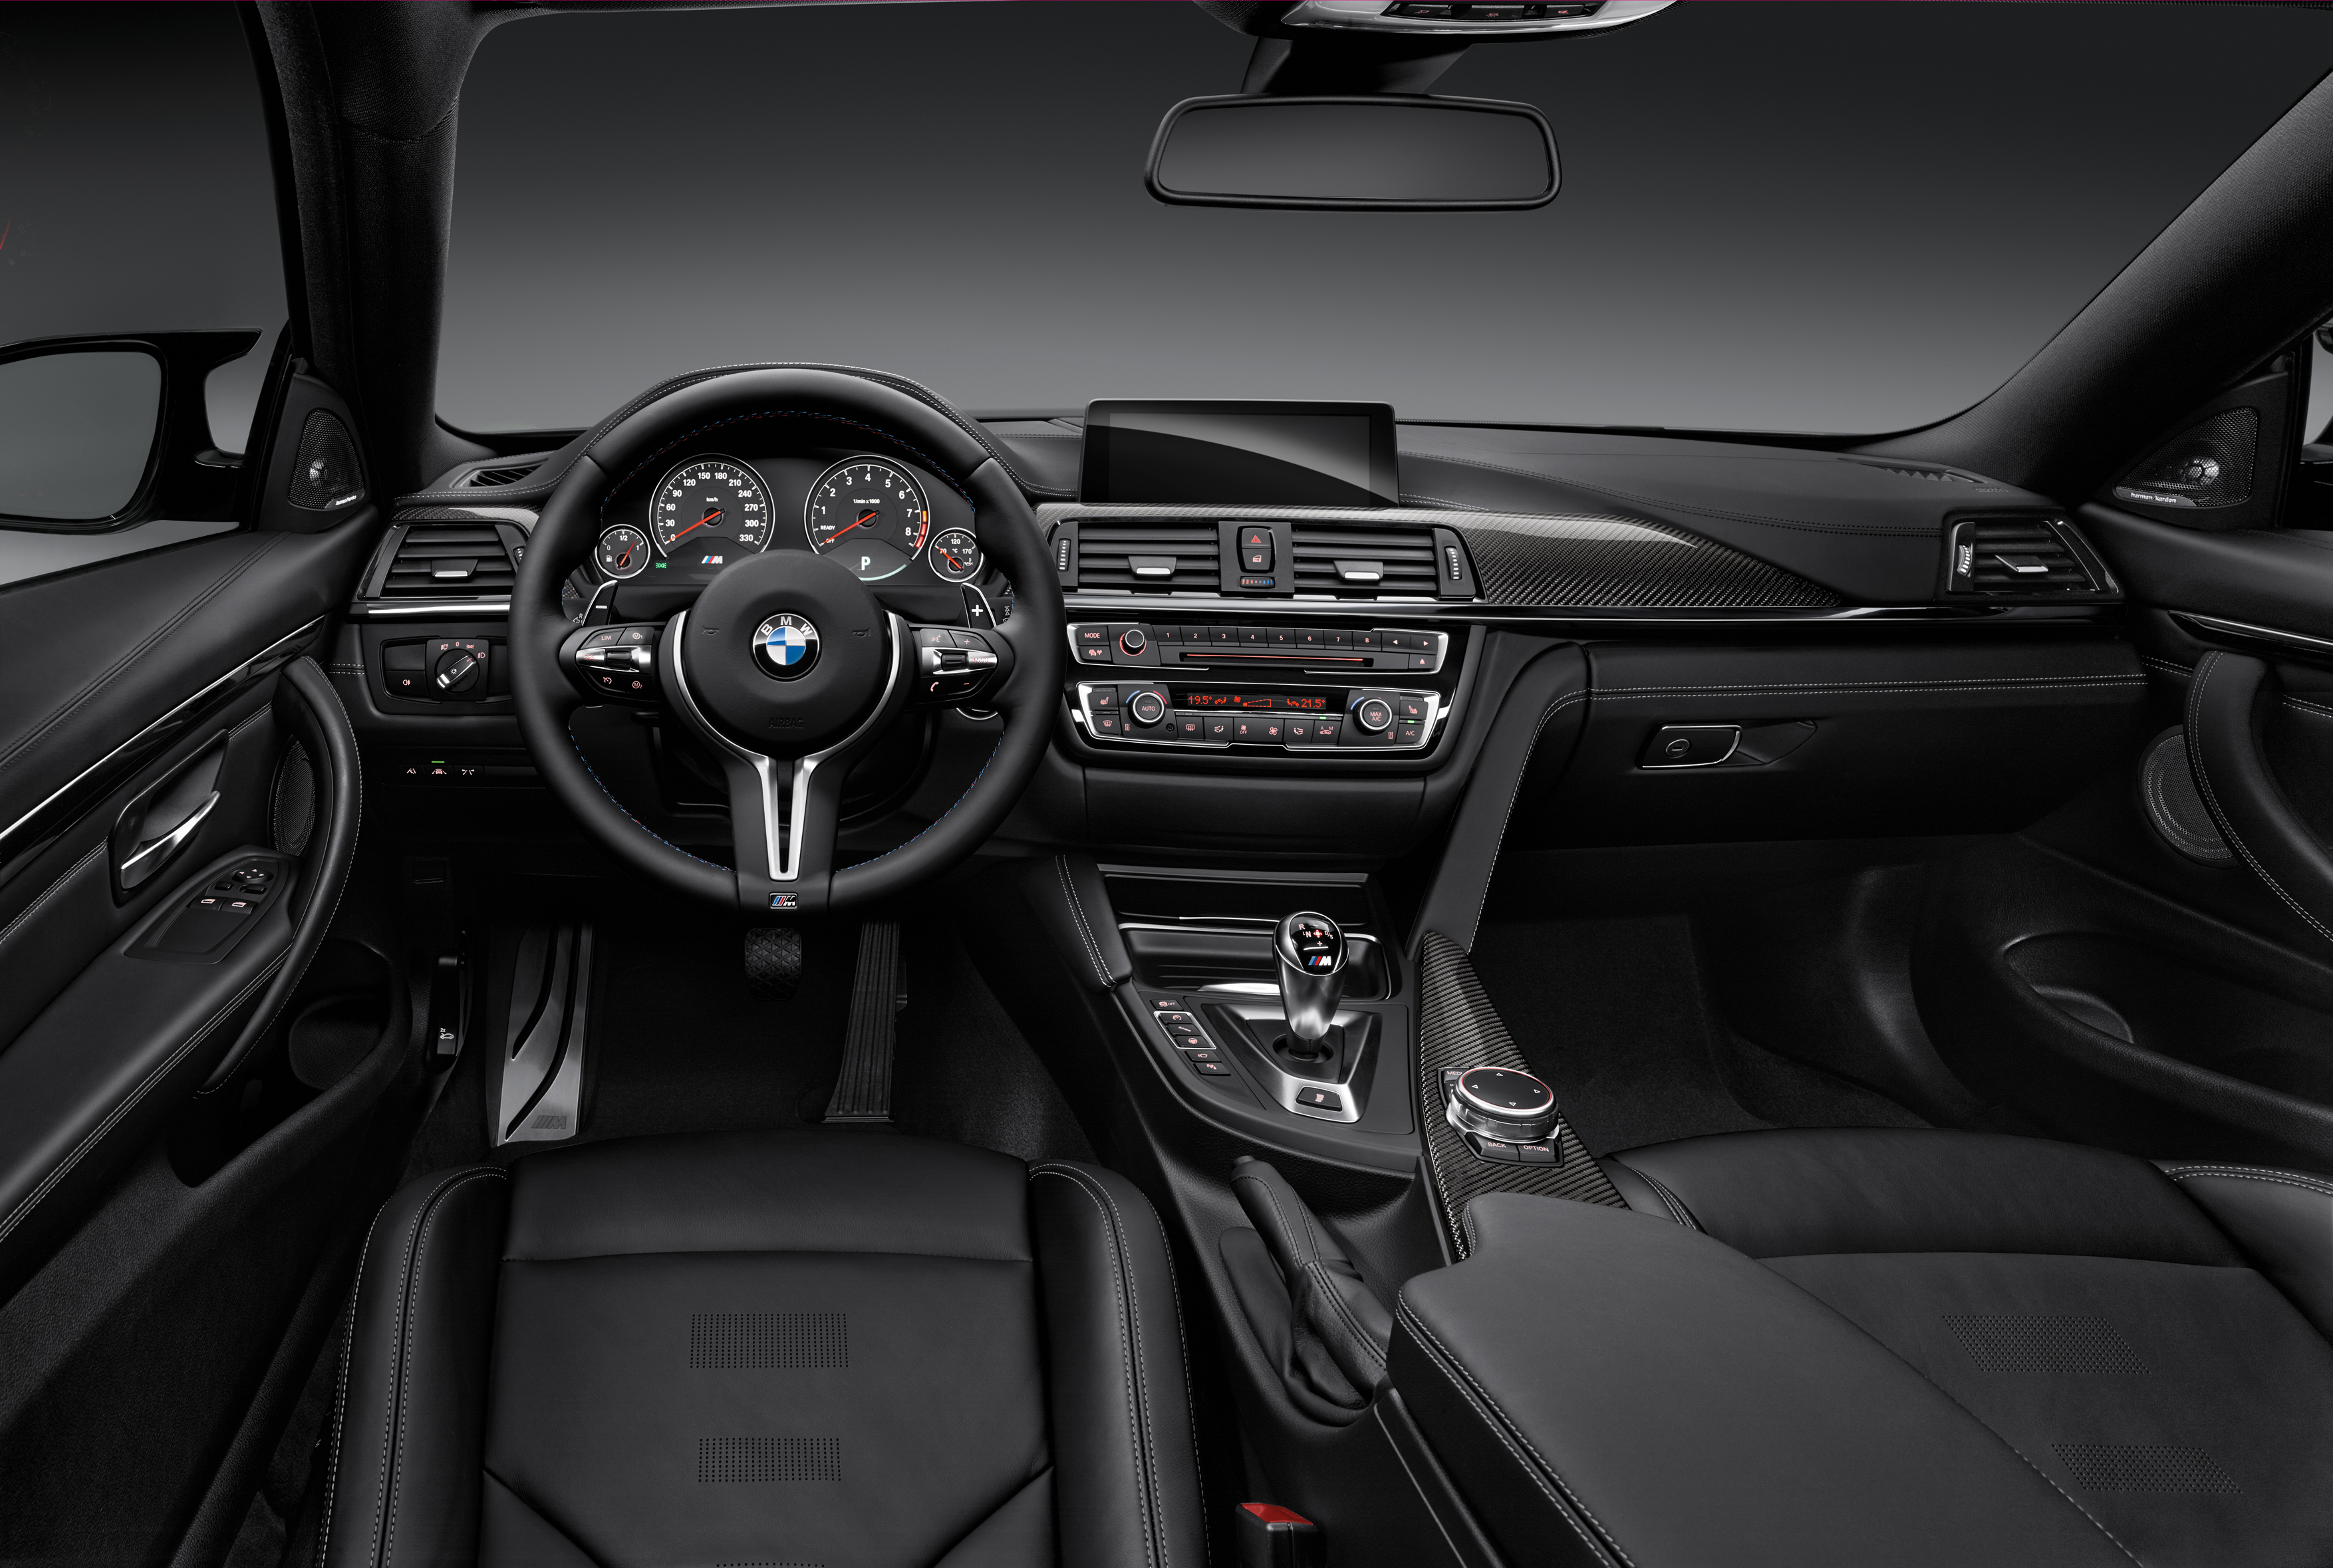 2015 BMW M4 Coupe Stills - (5) - SMADEMEDIA.COM Galleria